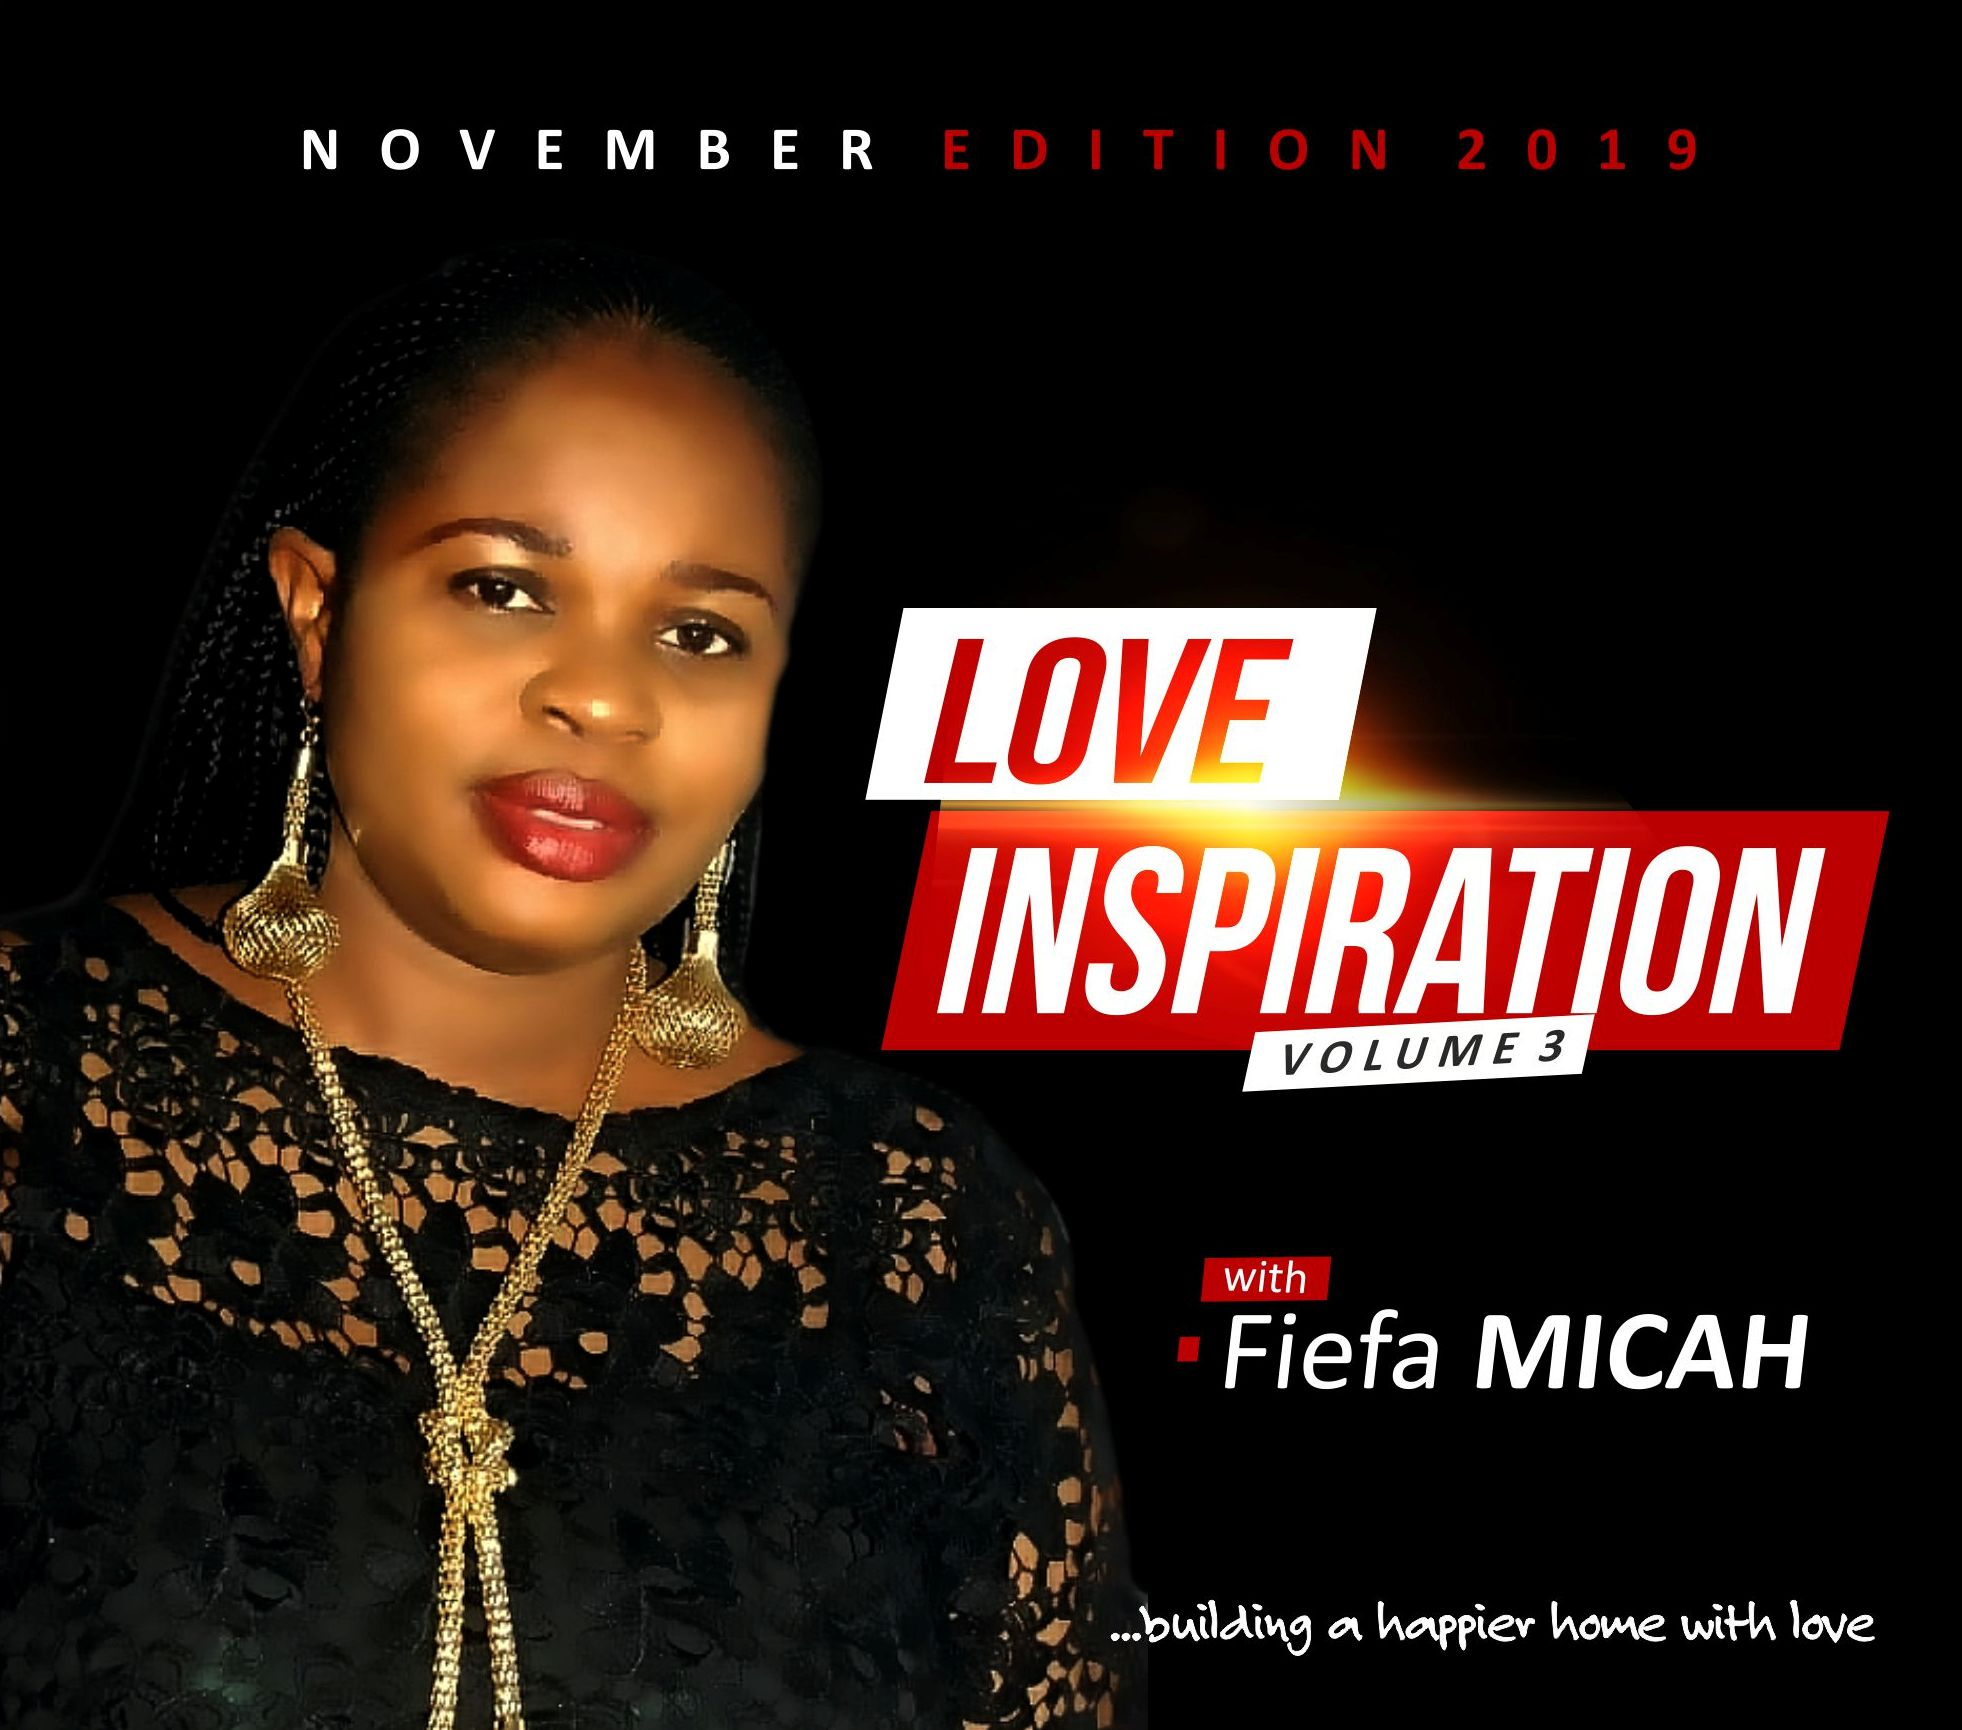 Make Your Relationship Relevant - Love Inspiration By Fiefa Micah